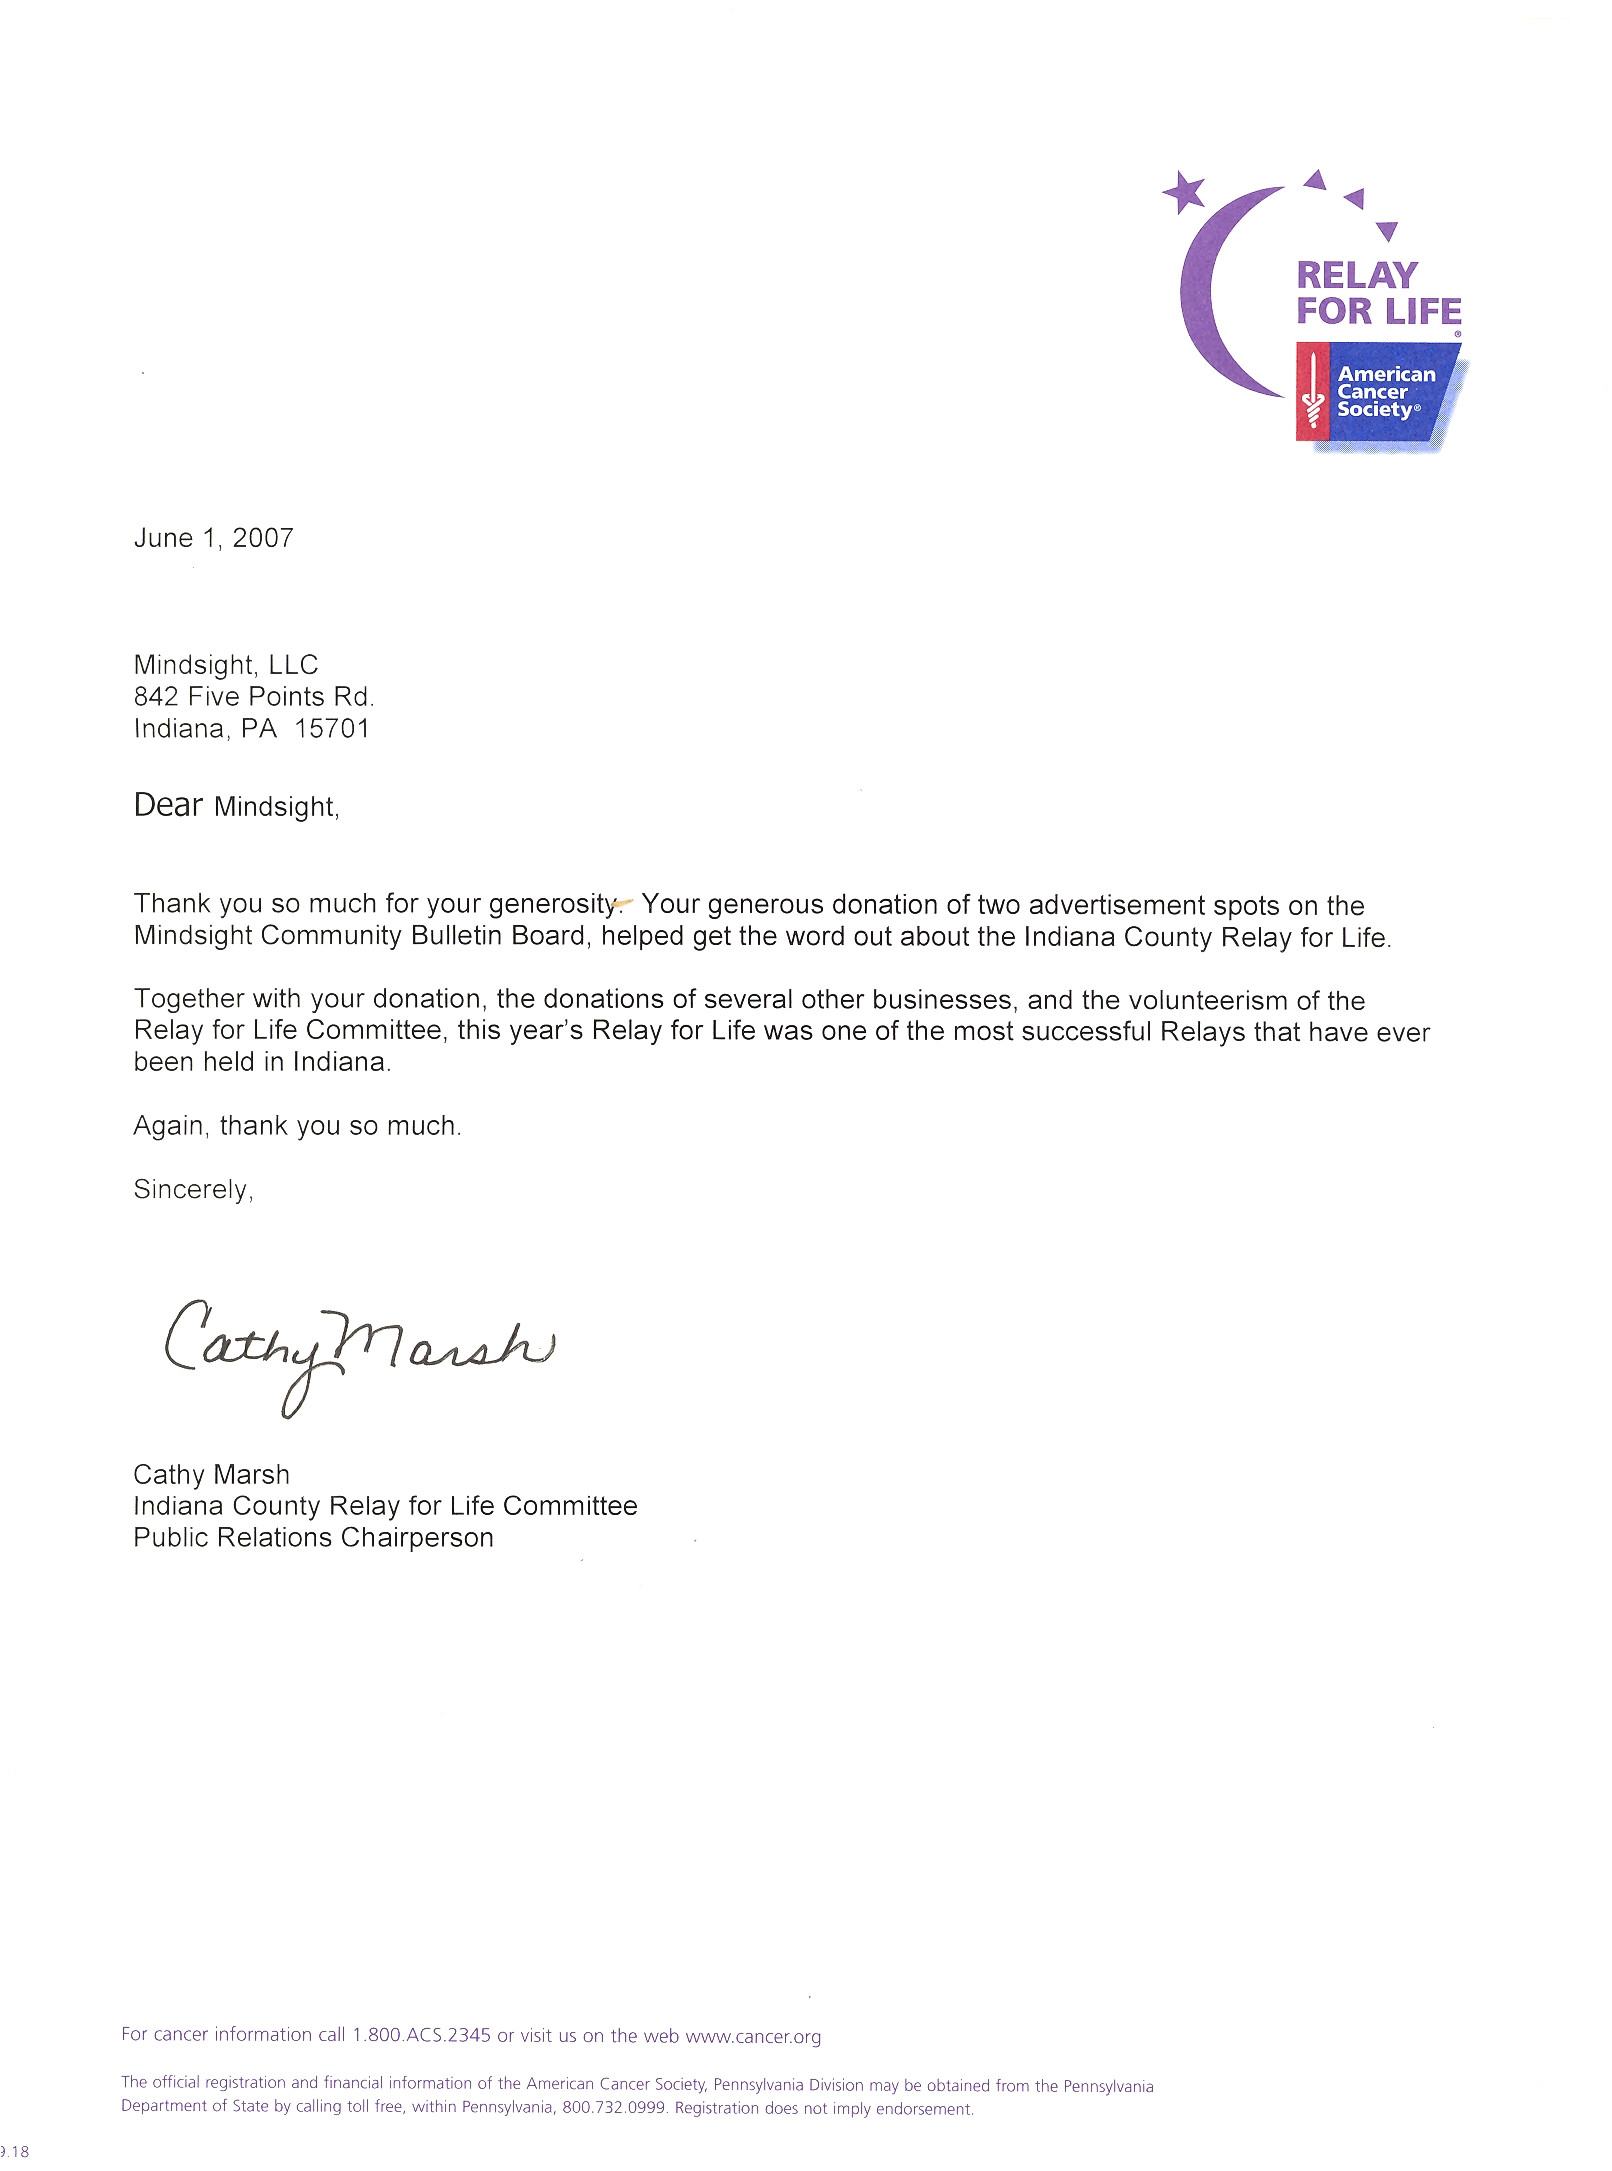 Relay for Life Donation Email Templates Mindsight Llc Community B B Thank You Notes